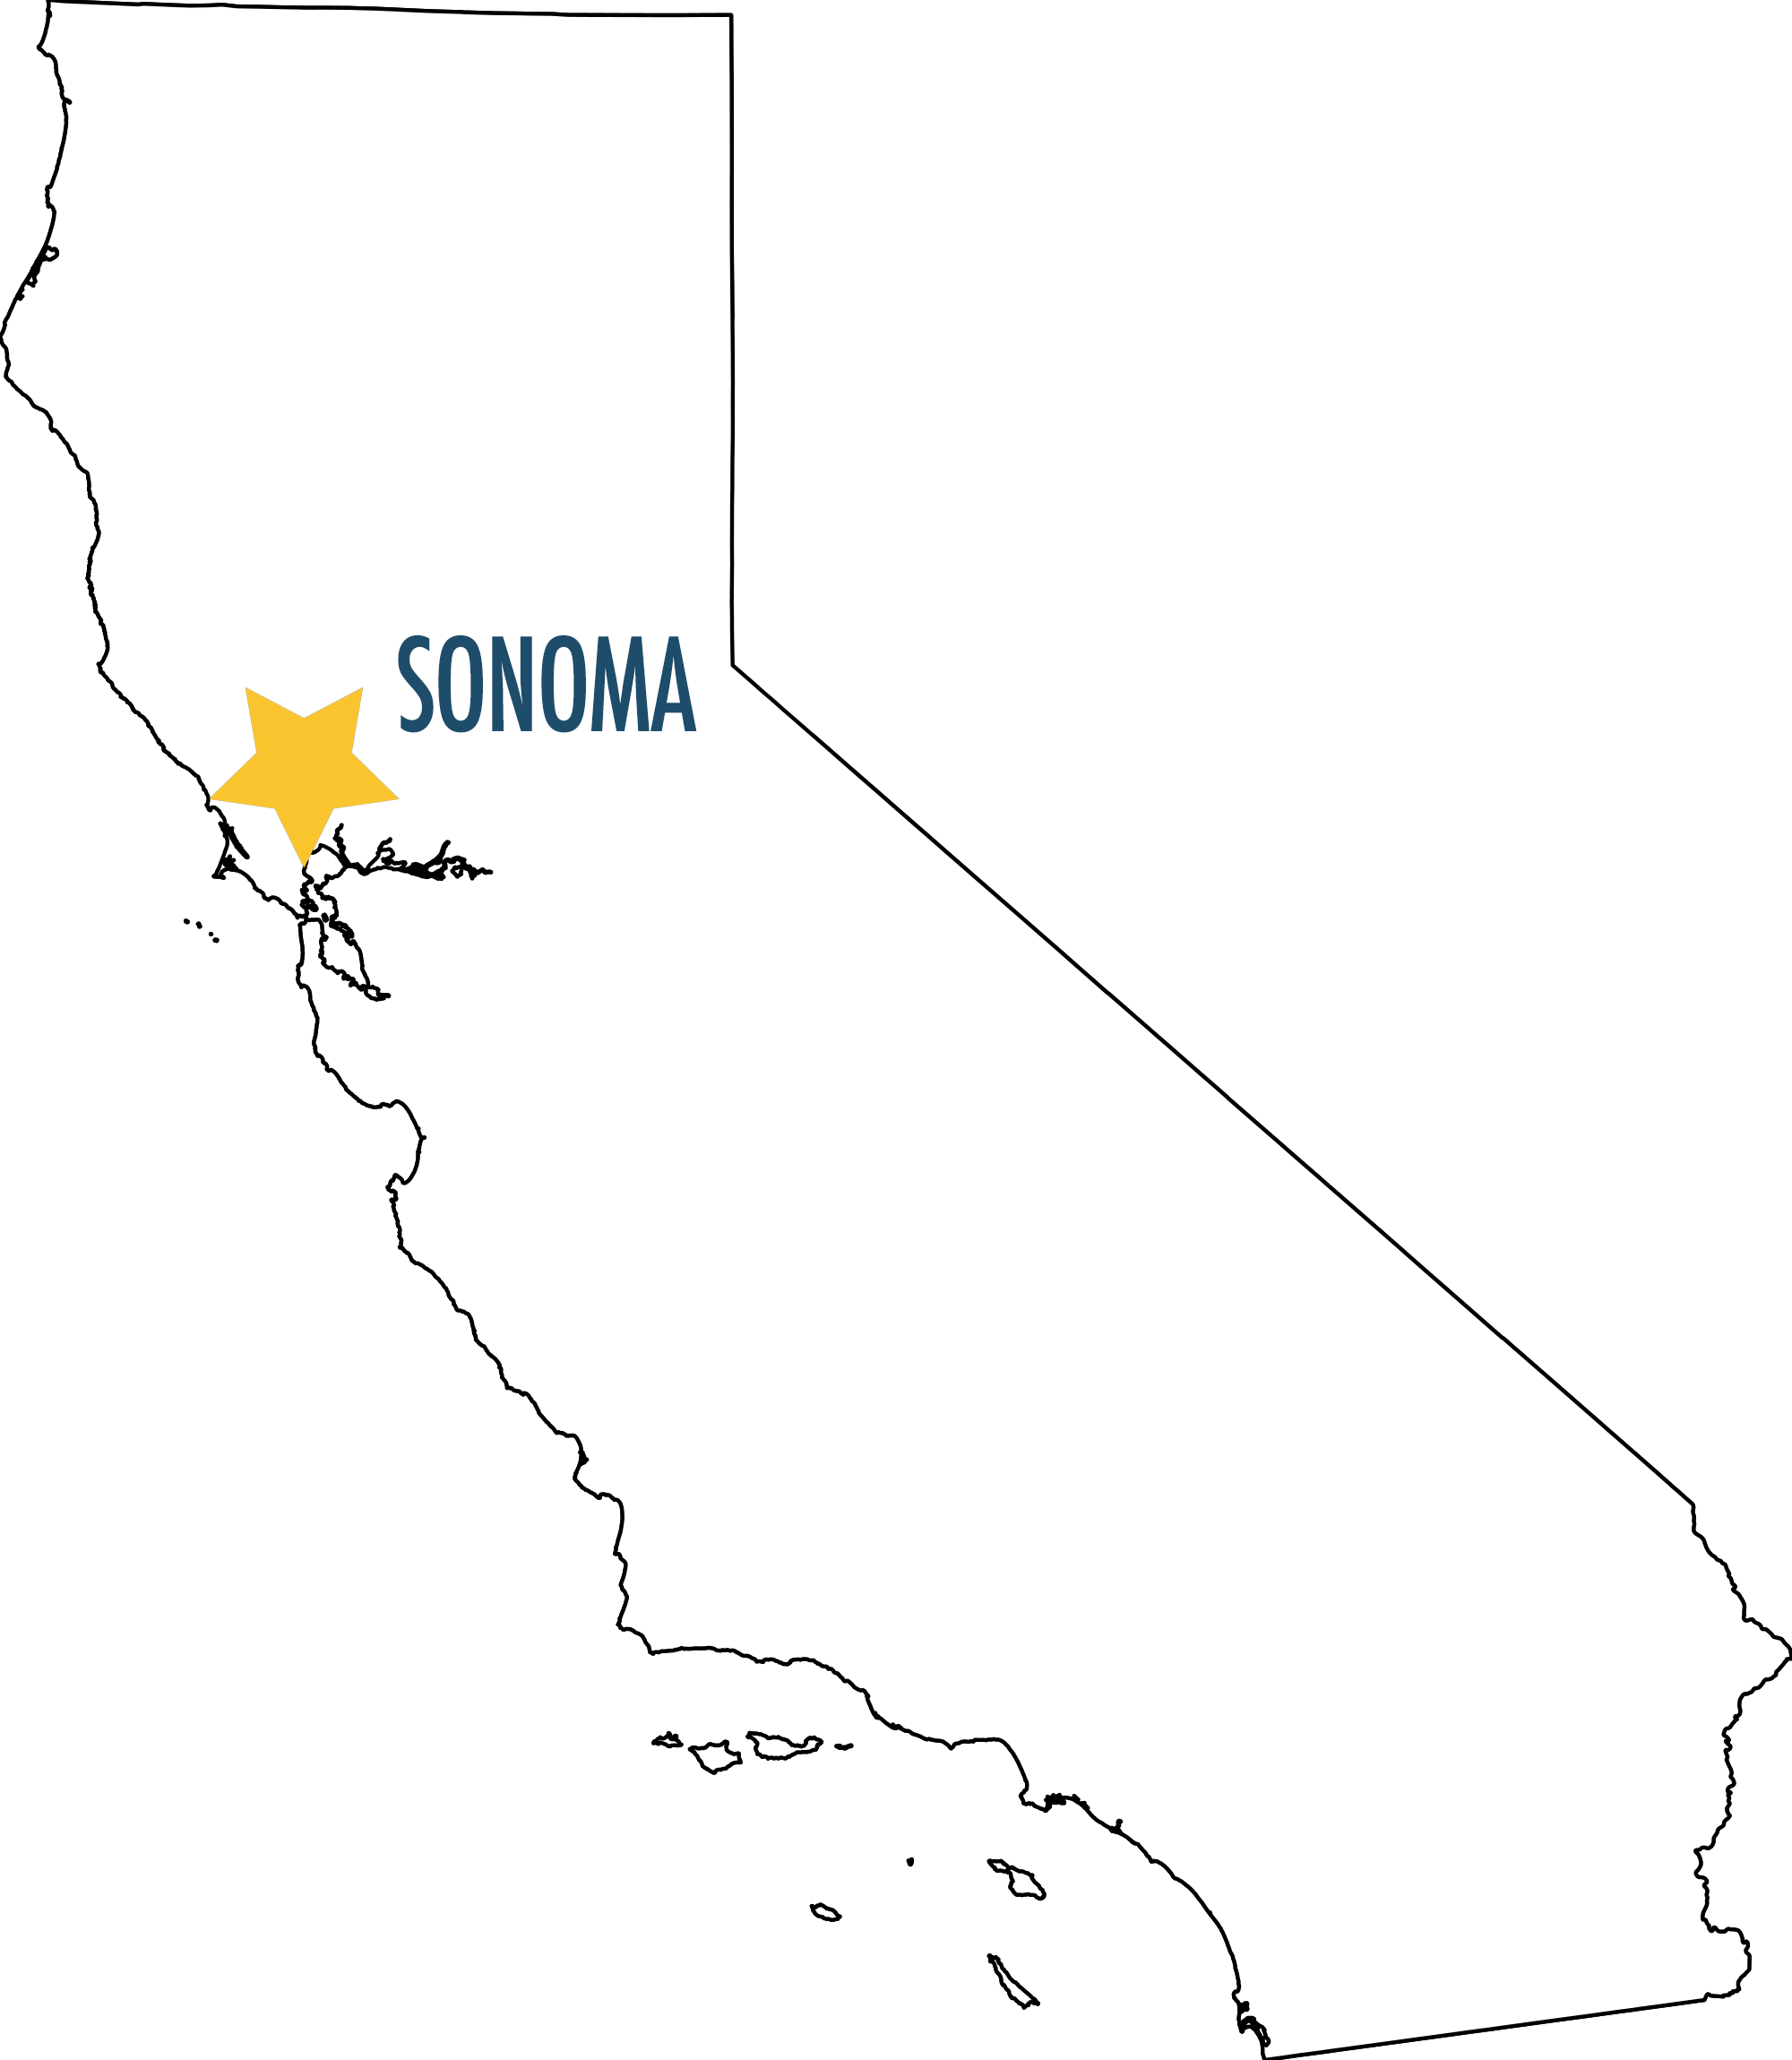 sonoma-map.png